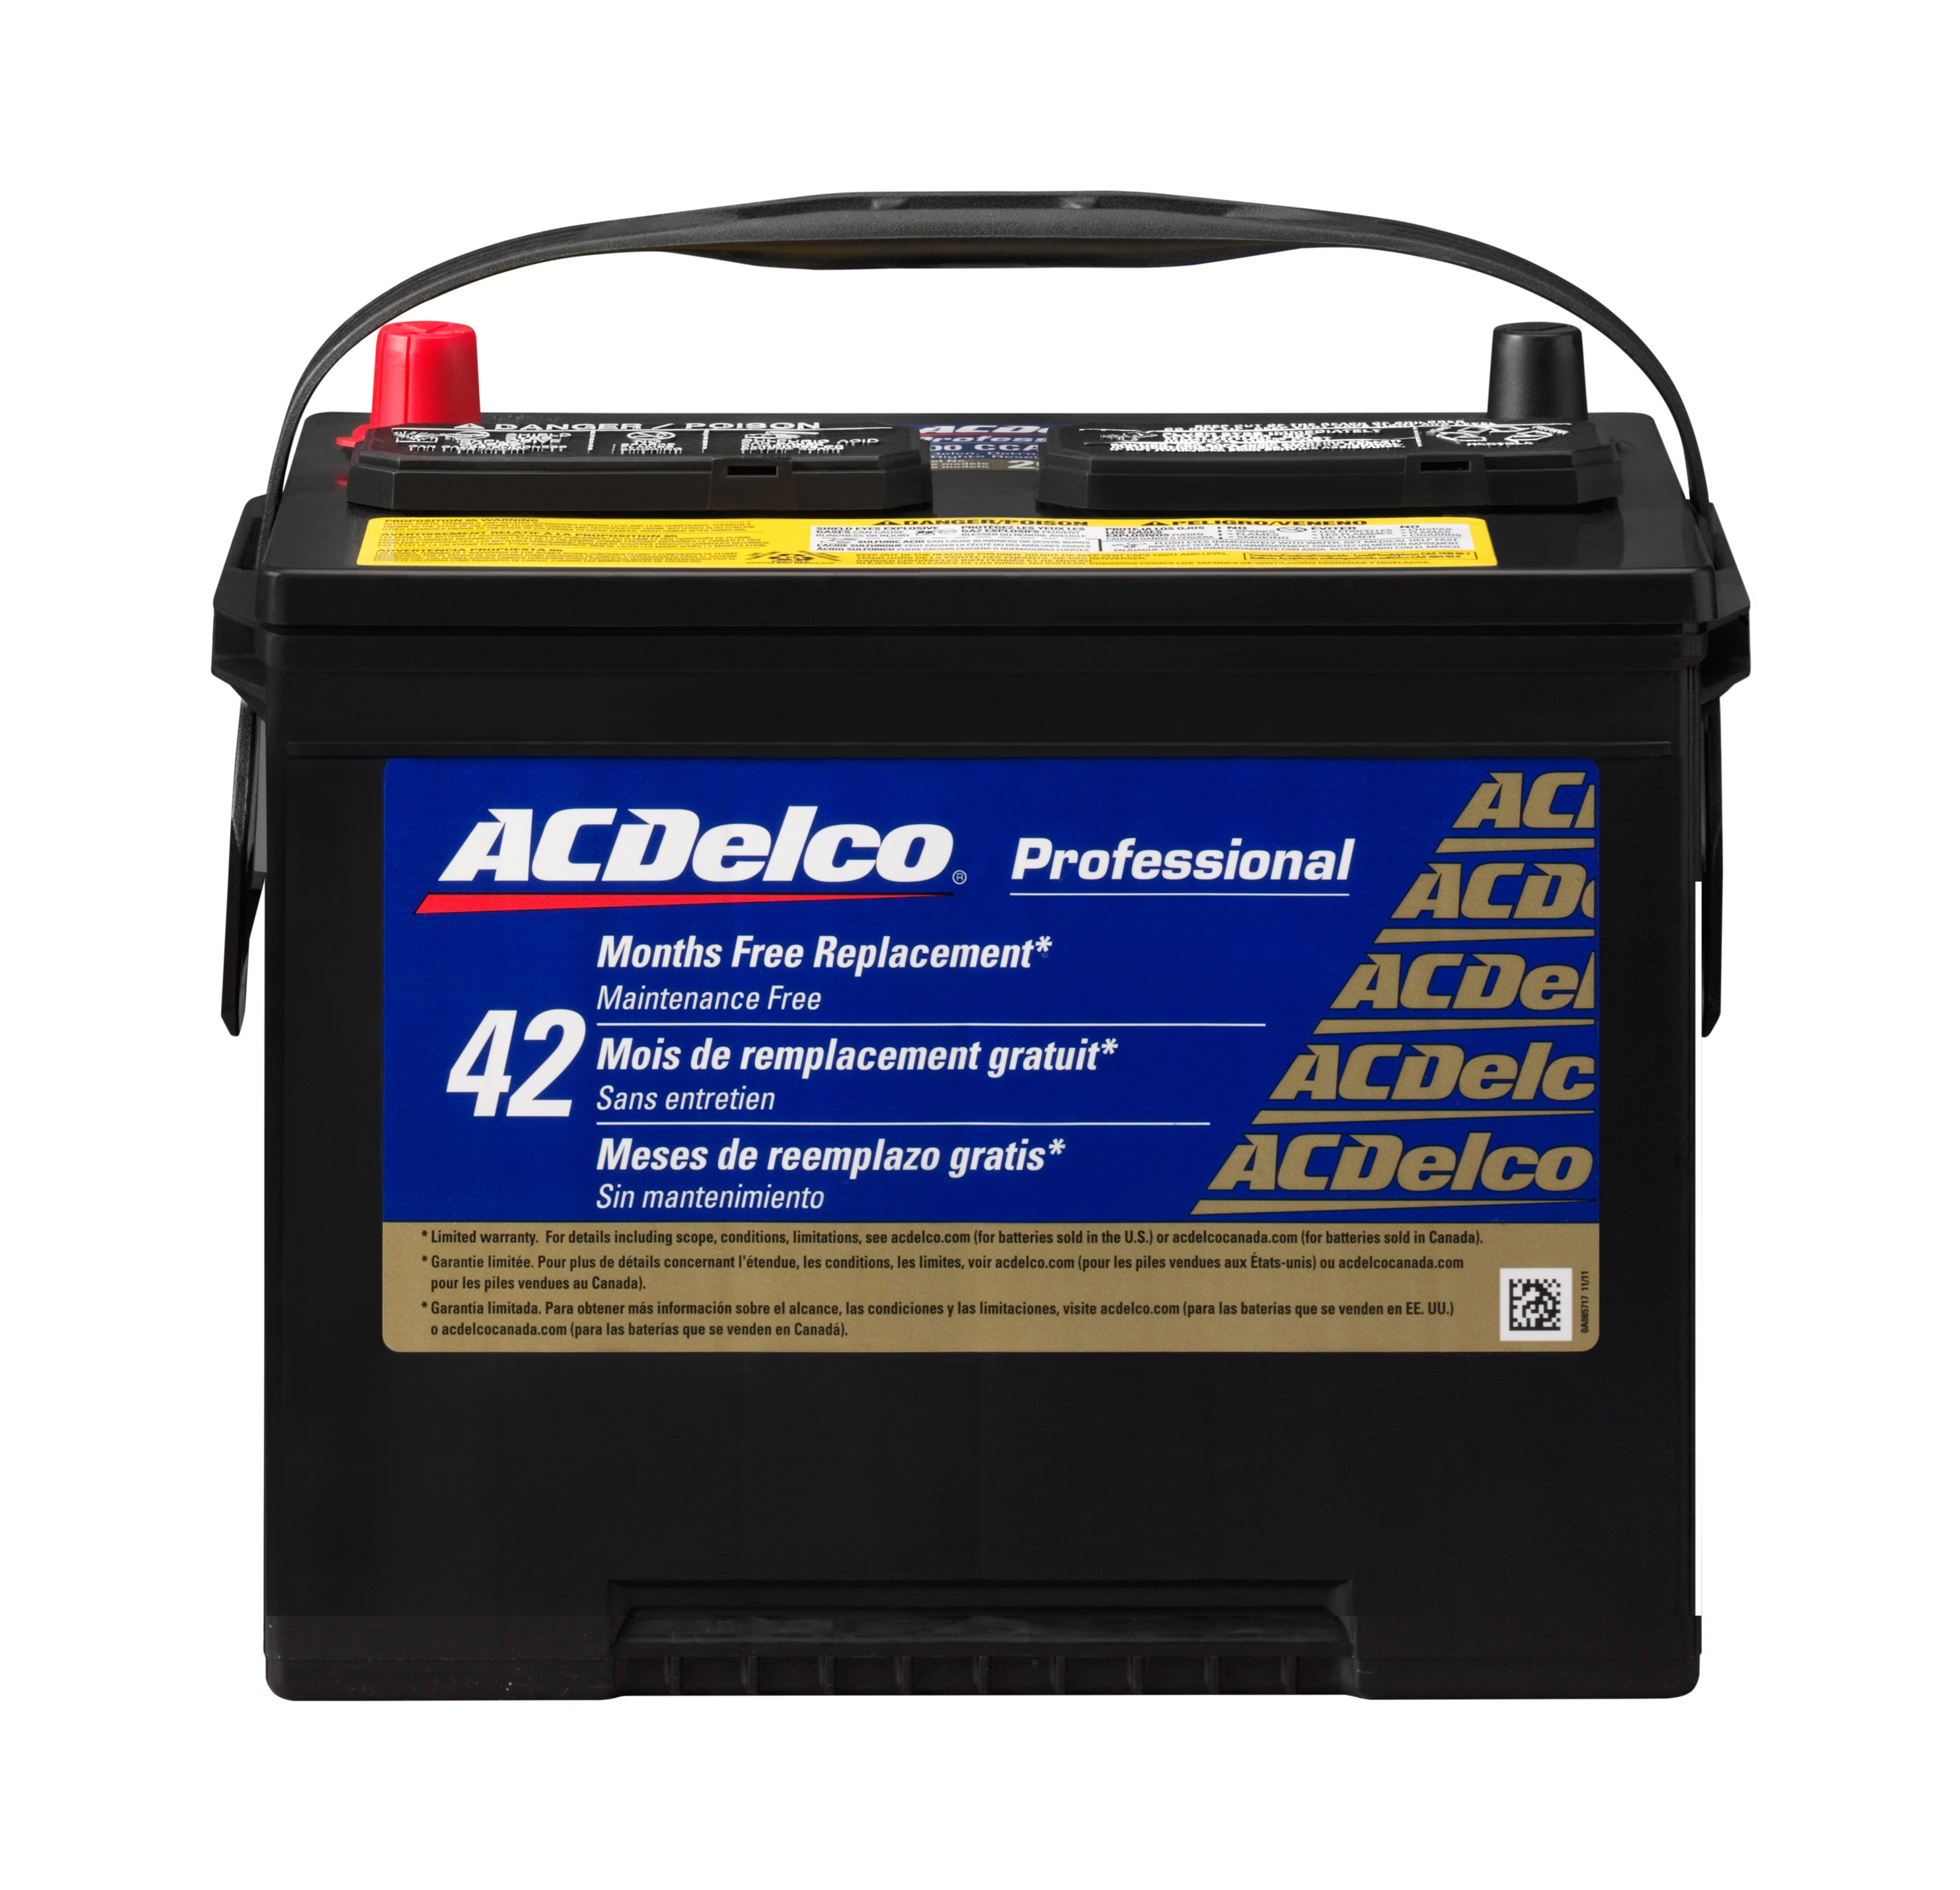 2010 toyota corolla batteries parts acdelco. Black Bedroom Furniture Sets. Home Design Ideas